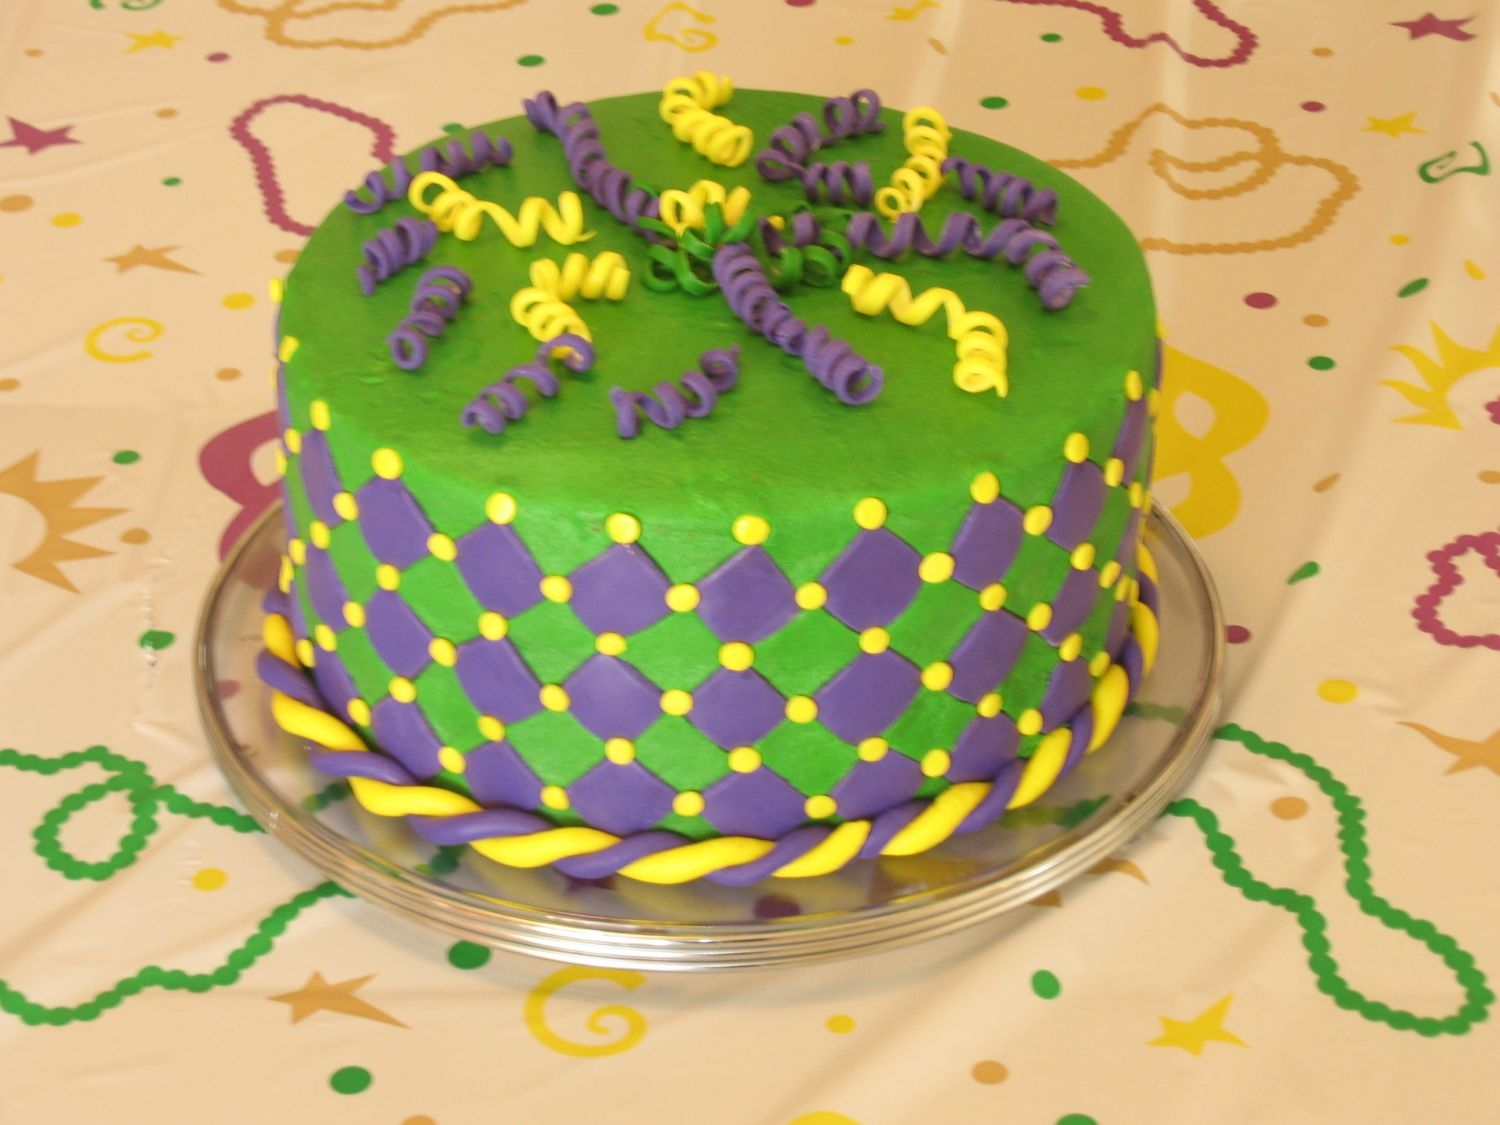 Mardi Gras Theme Birthday   Practice cake for daughters birthday. She came up with the design. Hopefully the actual party cake will look better!